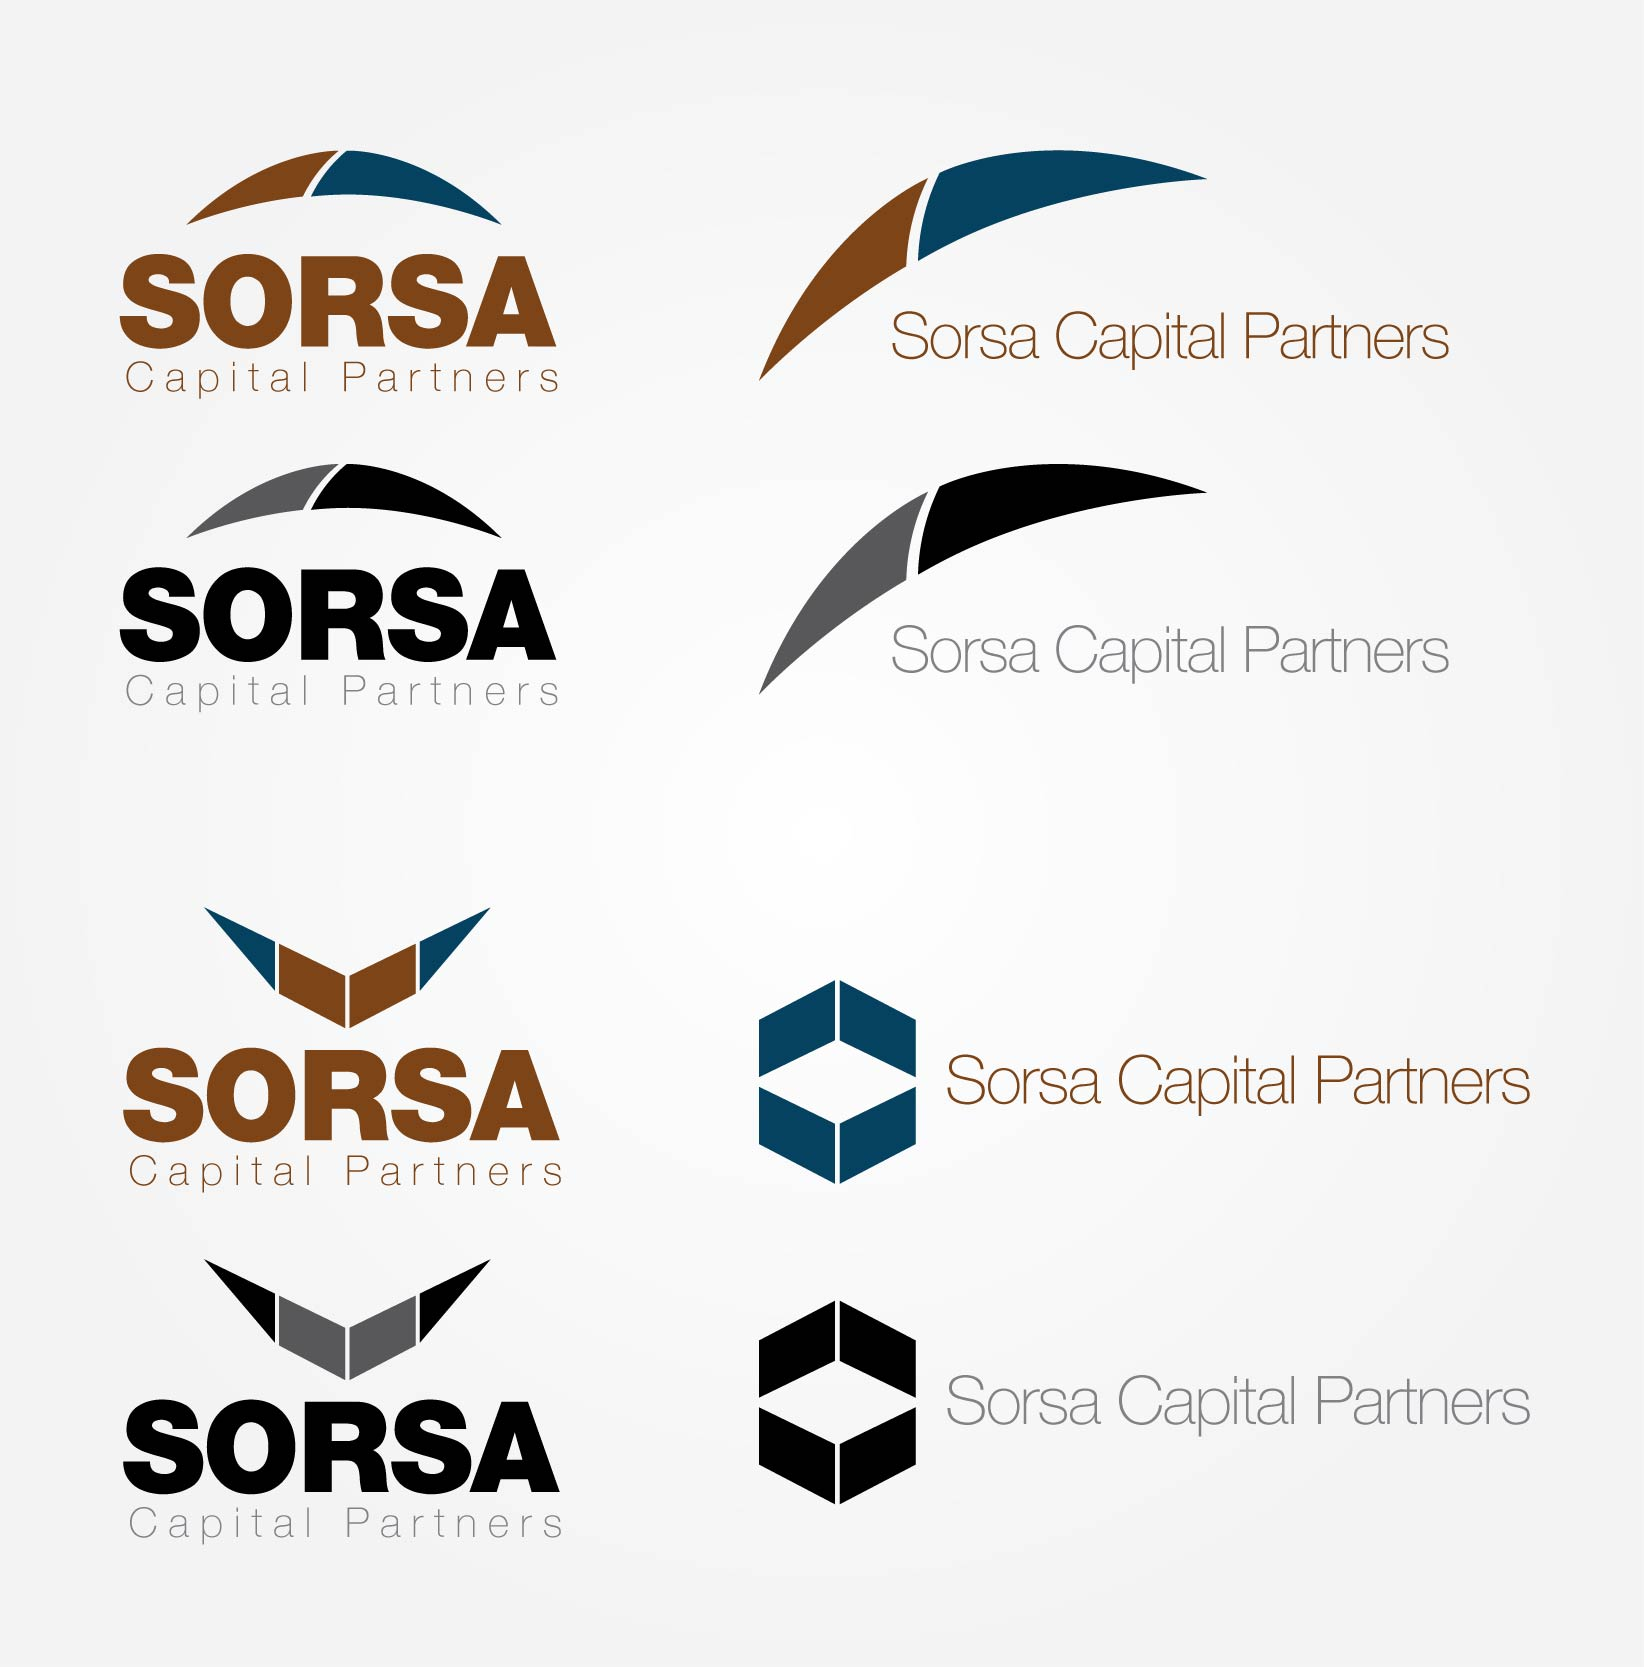 Logo Design by Maduka Fernando - Entry No. 36 in the Logo Design Contest Sorsa Capital Partners Logo Design.